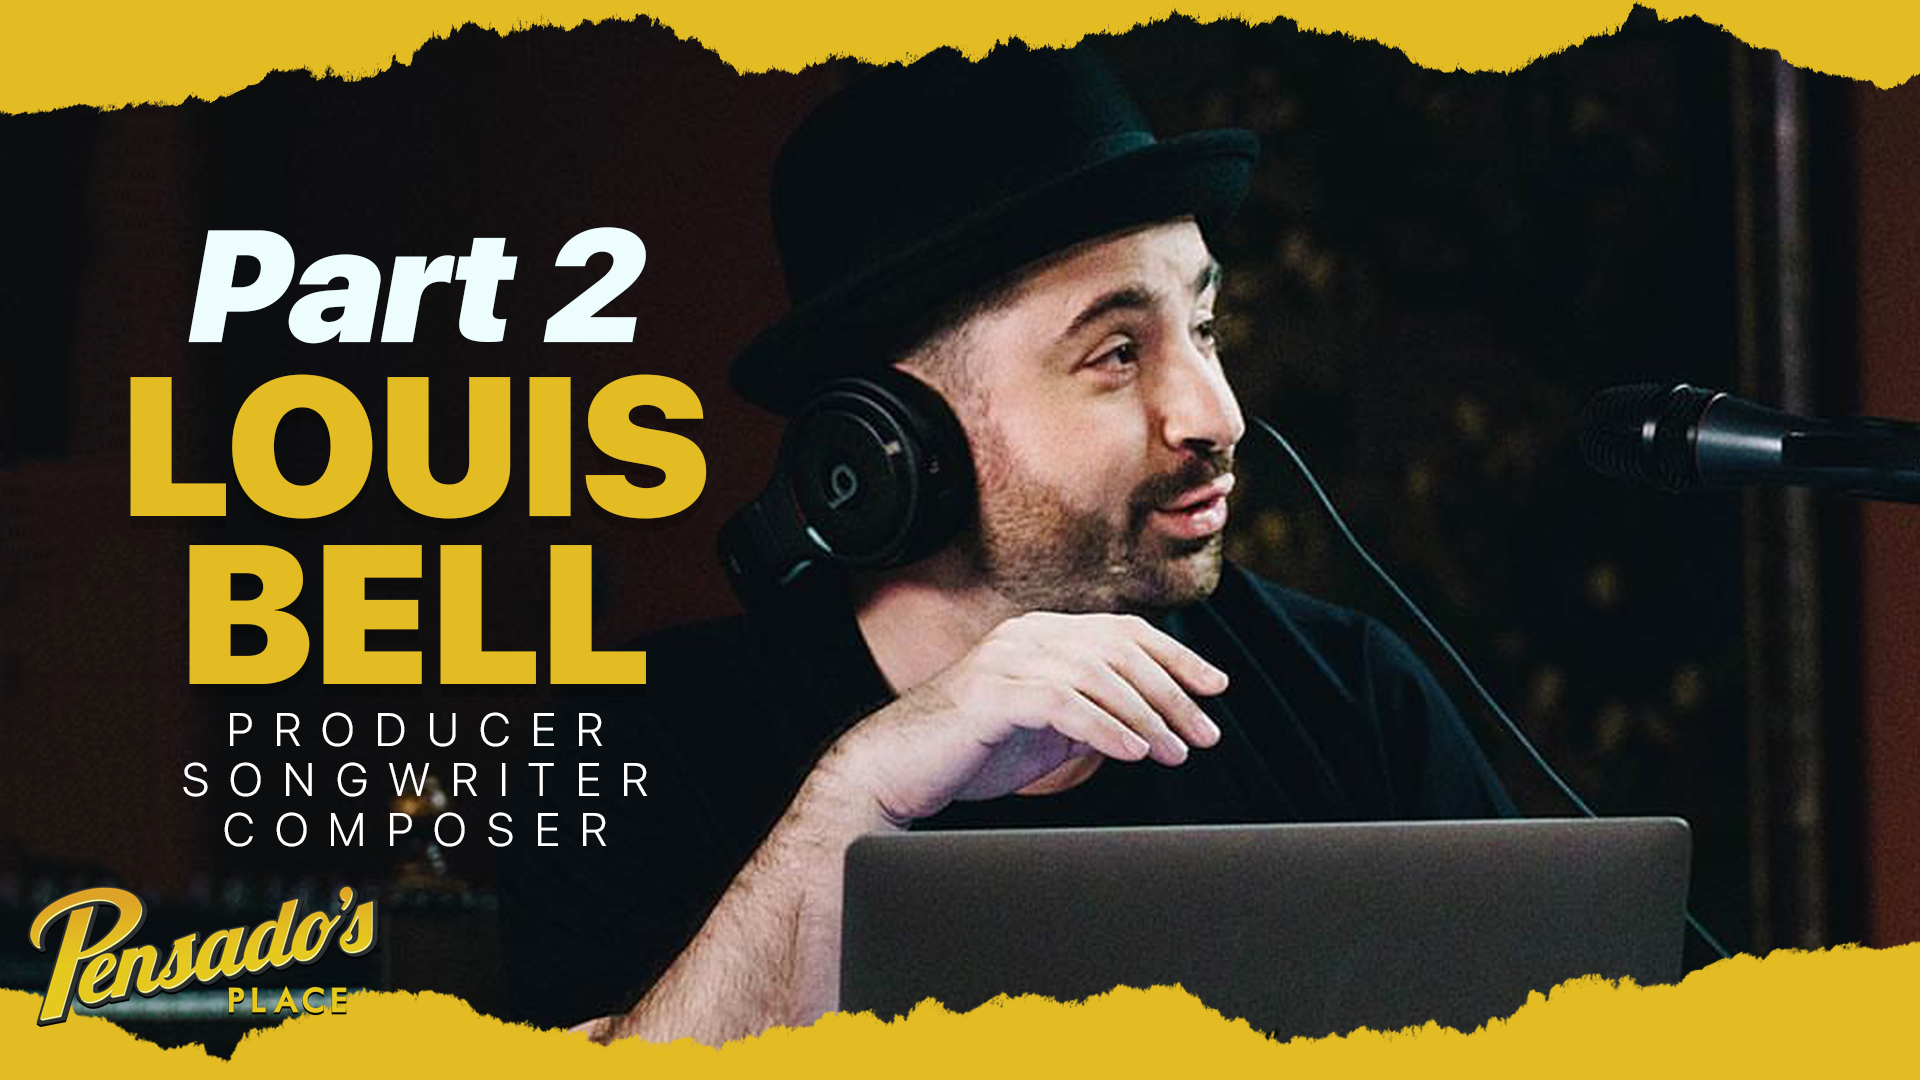 """Post Malone """"Rockstar"""" Songwriter / Producer / Composer, Louis Bell (Part 2)"""